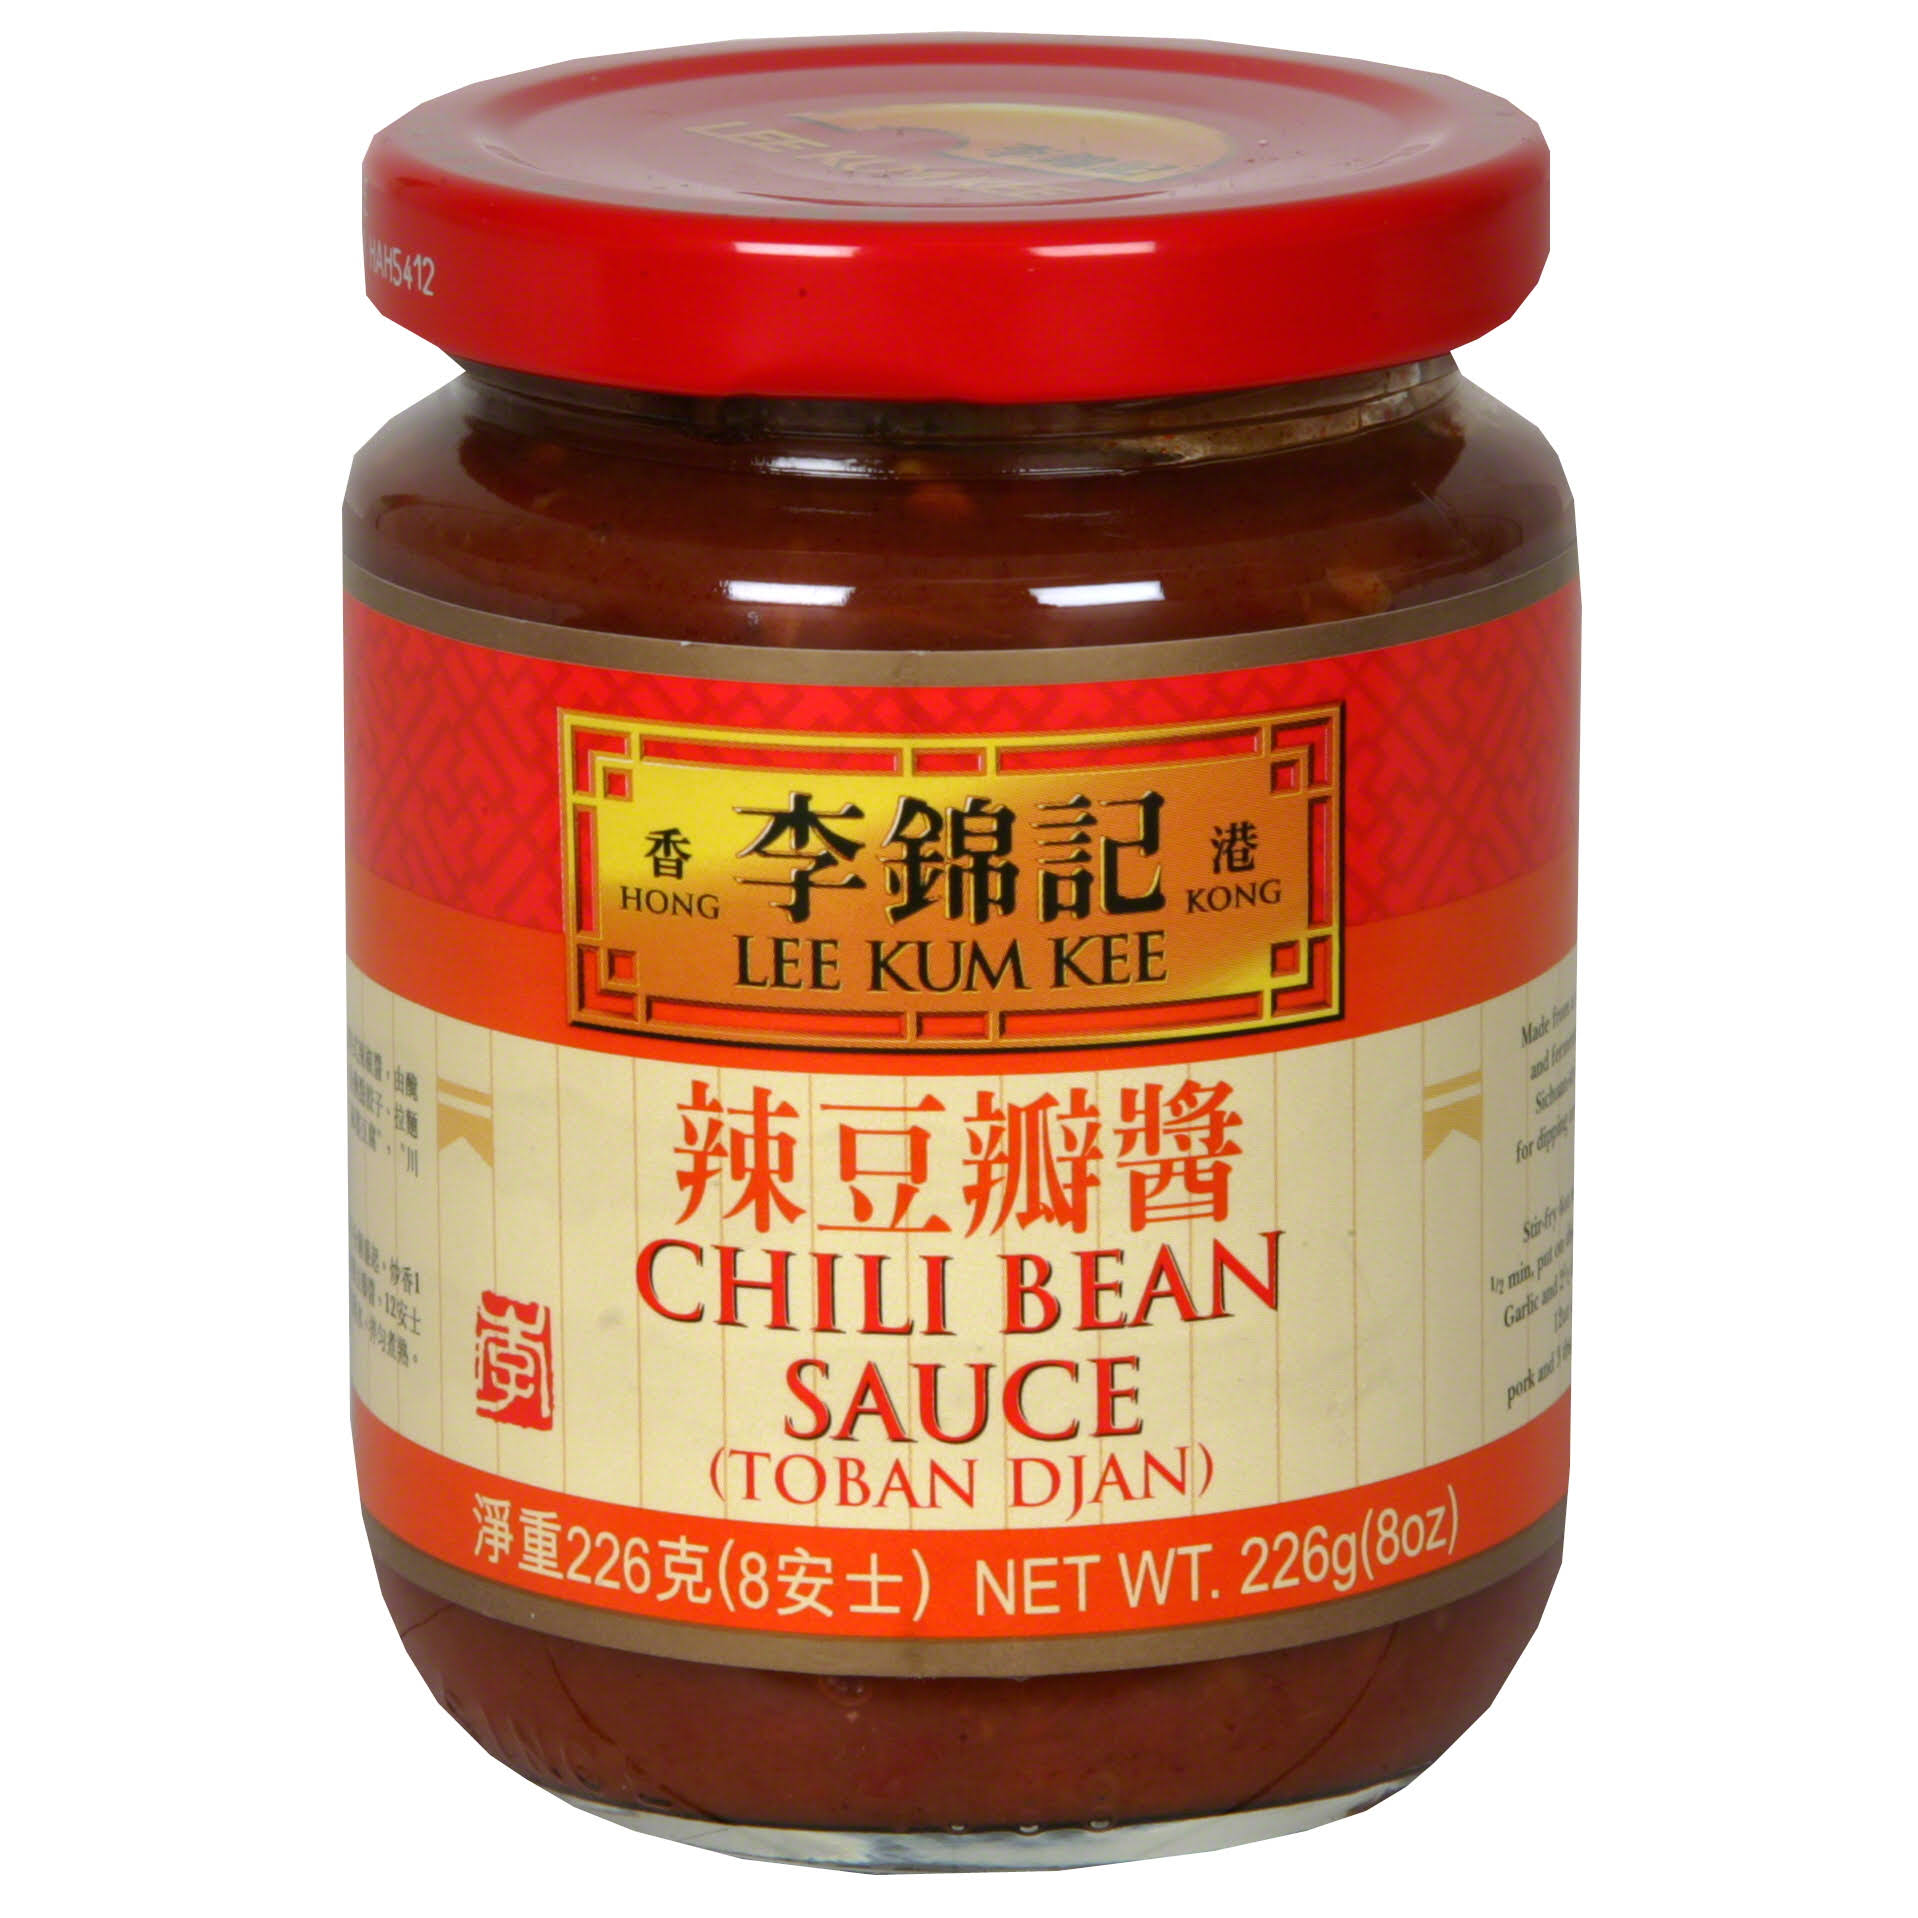 Lee Kum Kee Chili Bean Sauce - 8oz